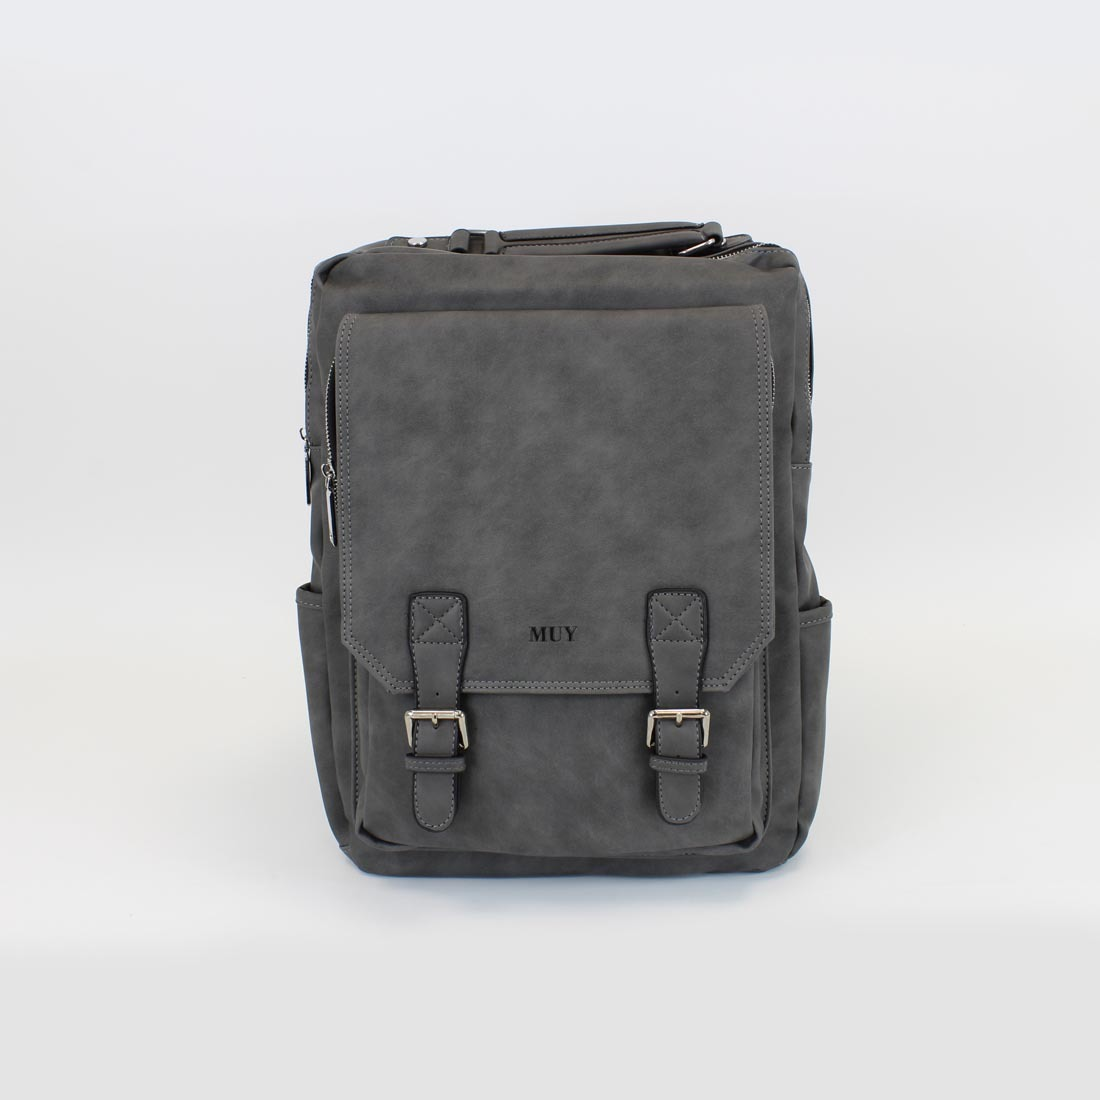 Real Leather- With flap and 2 buckles